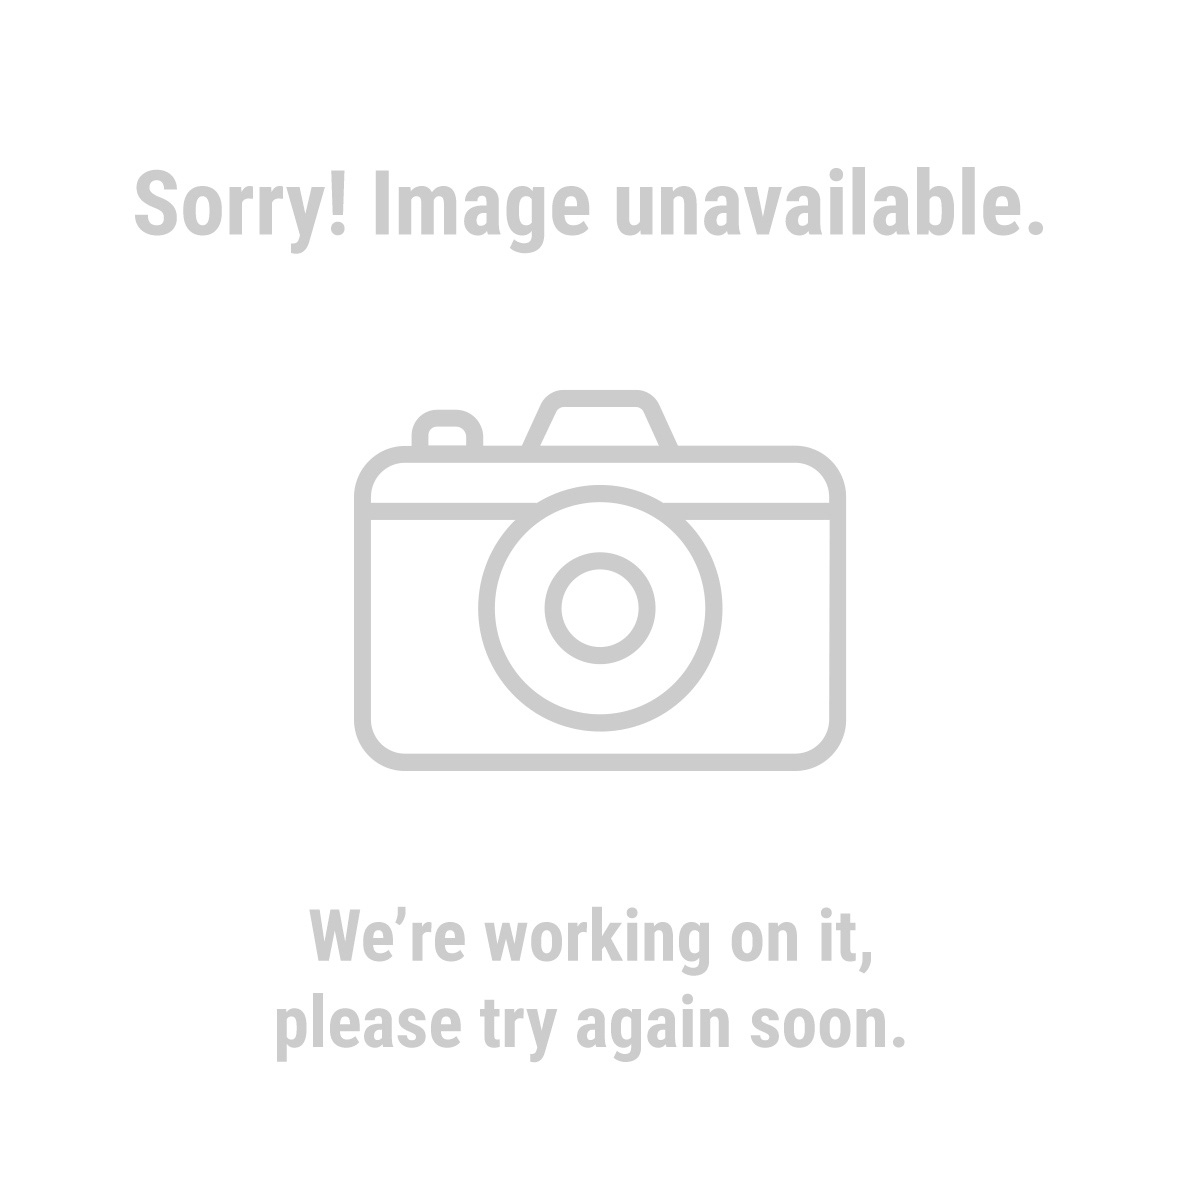 Badland Winches 63139 ATV/Utility Synthetic Rope & Fairlead Set